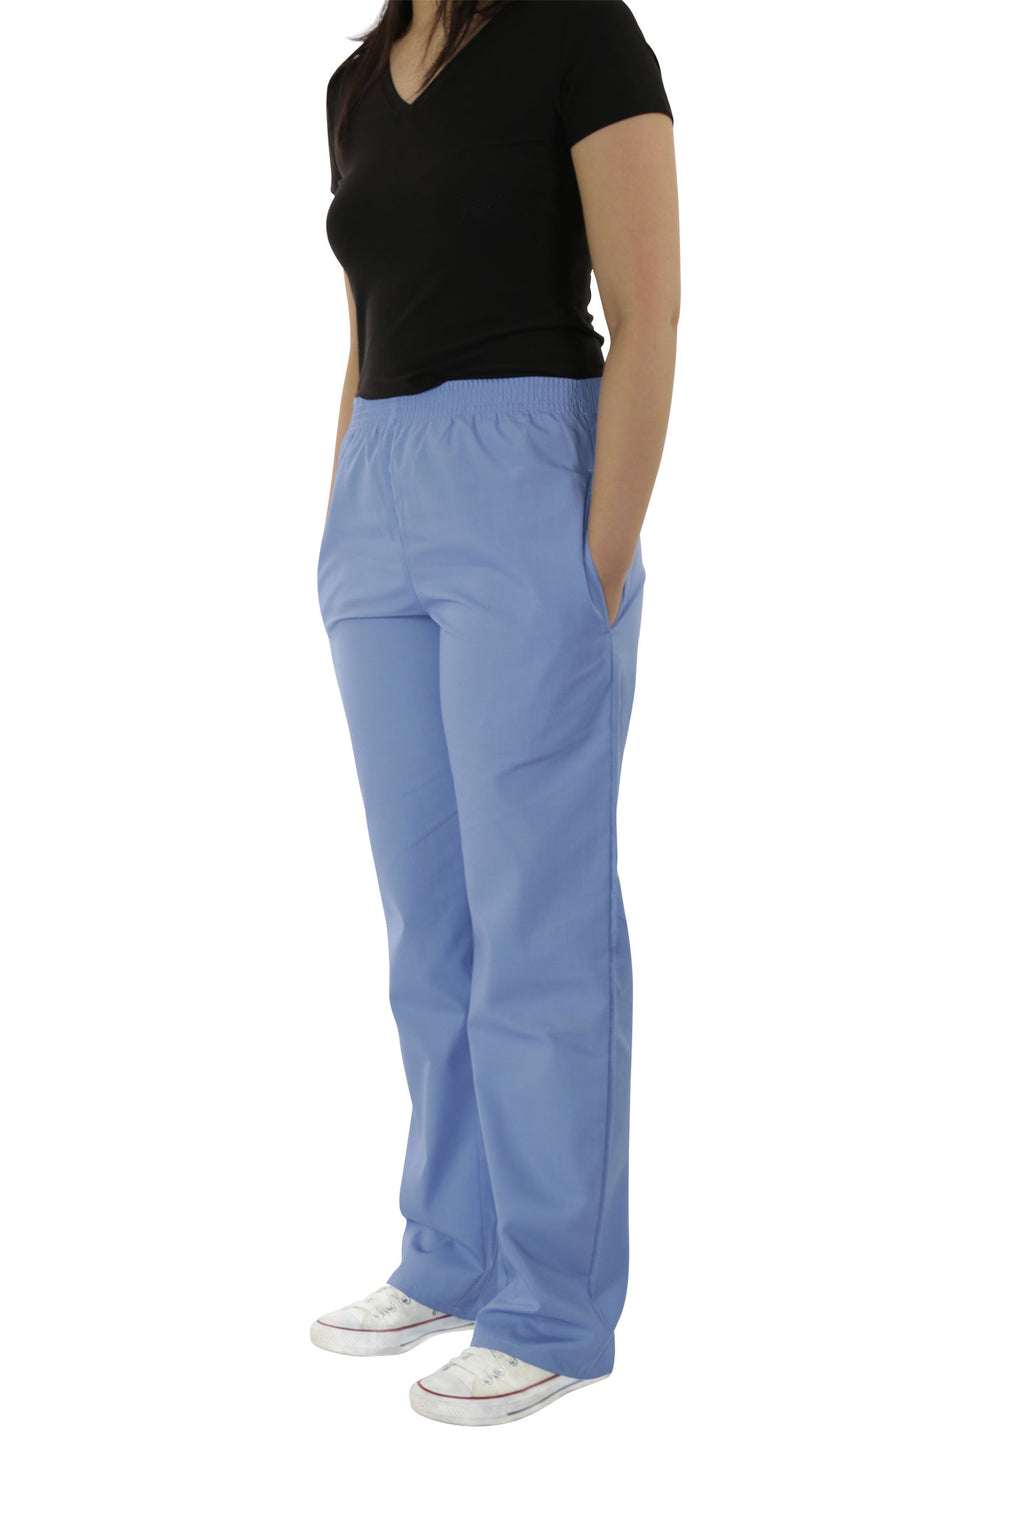 300C – Unisex Elastic Waist Scrub Pants With 2 Side Pockets